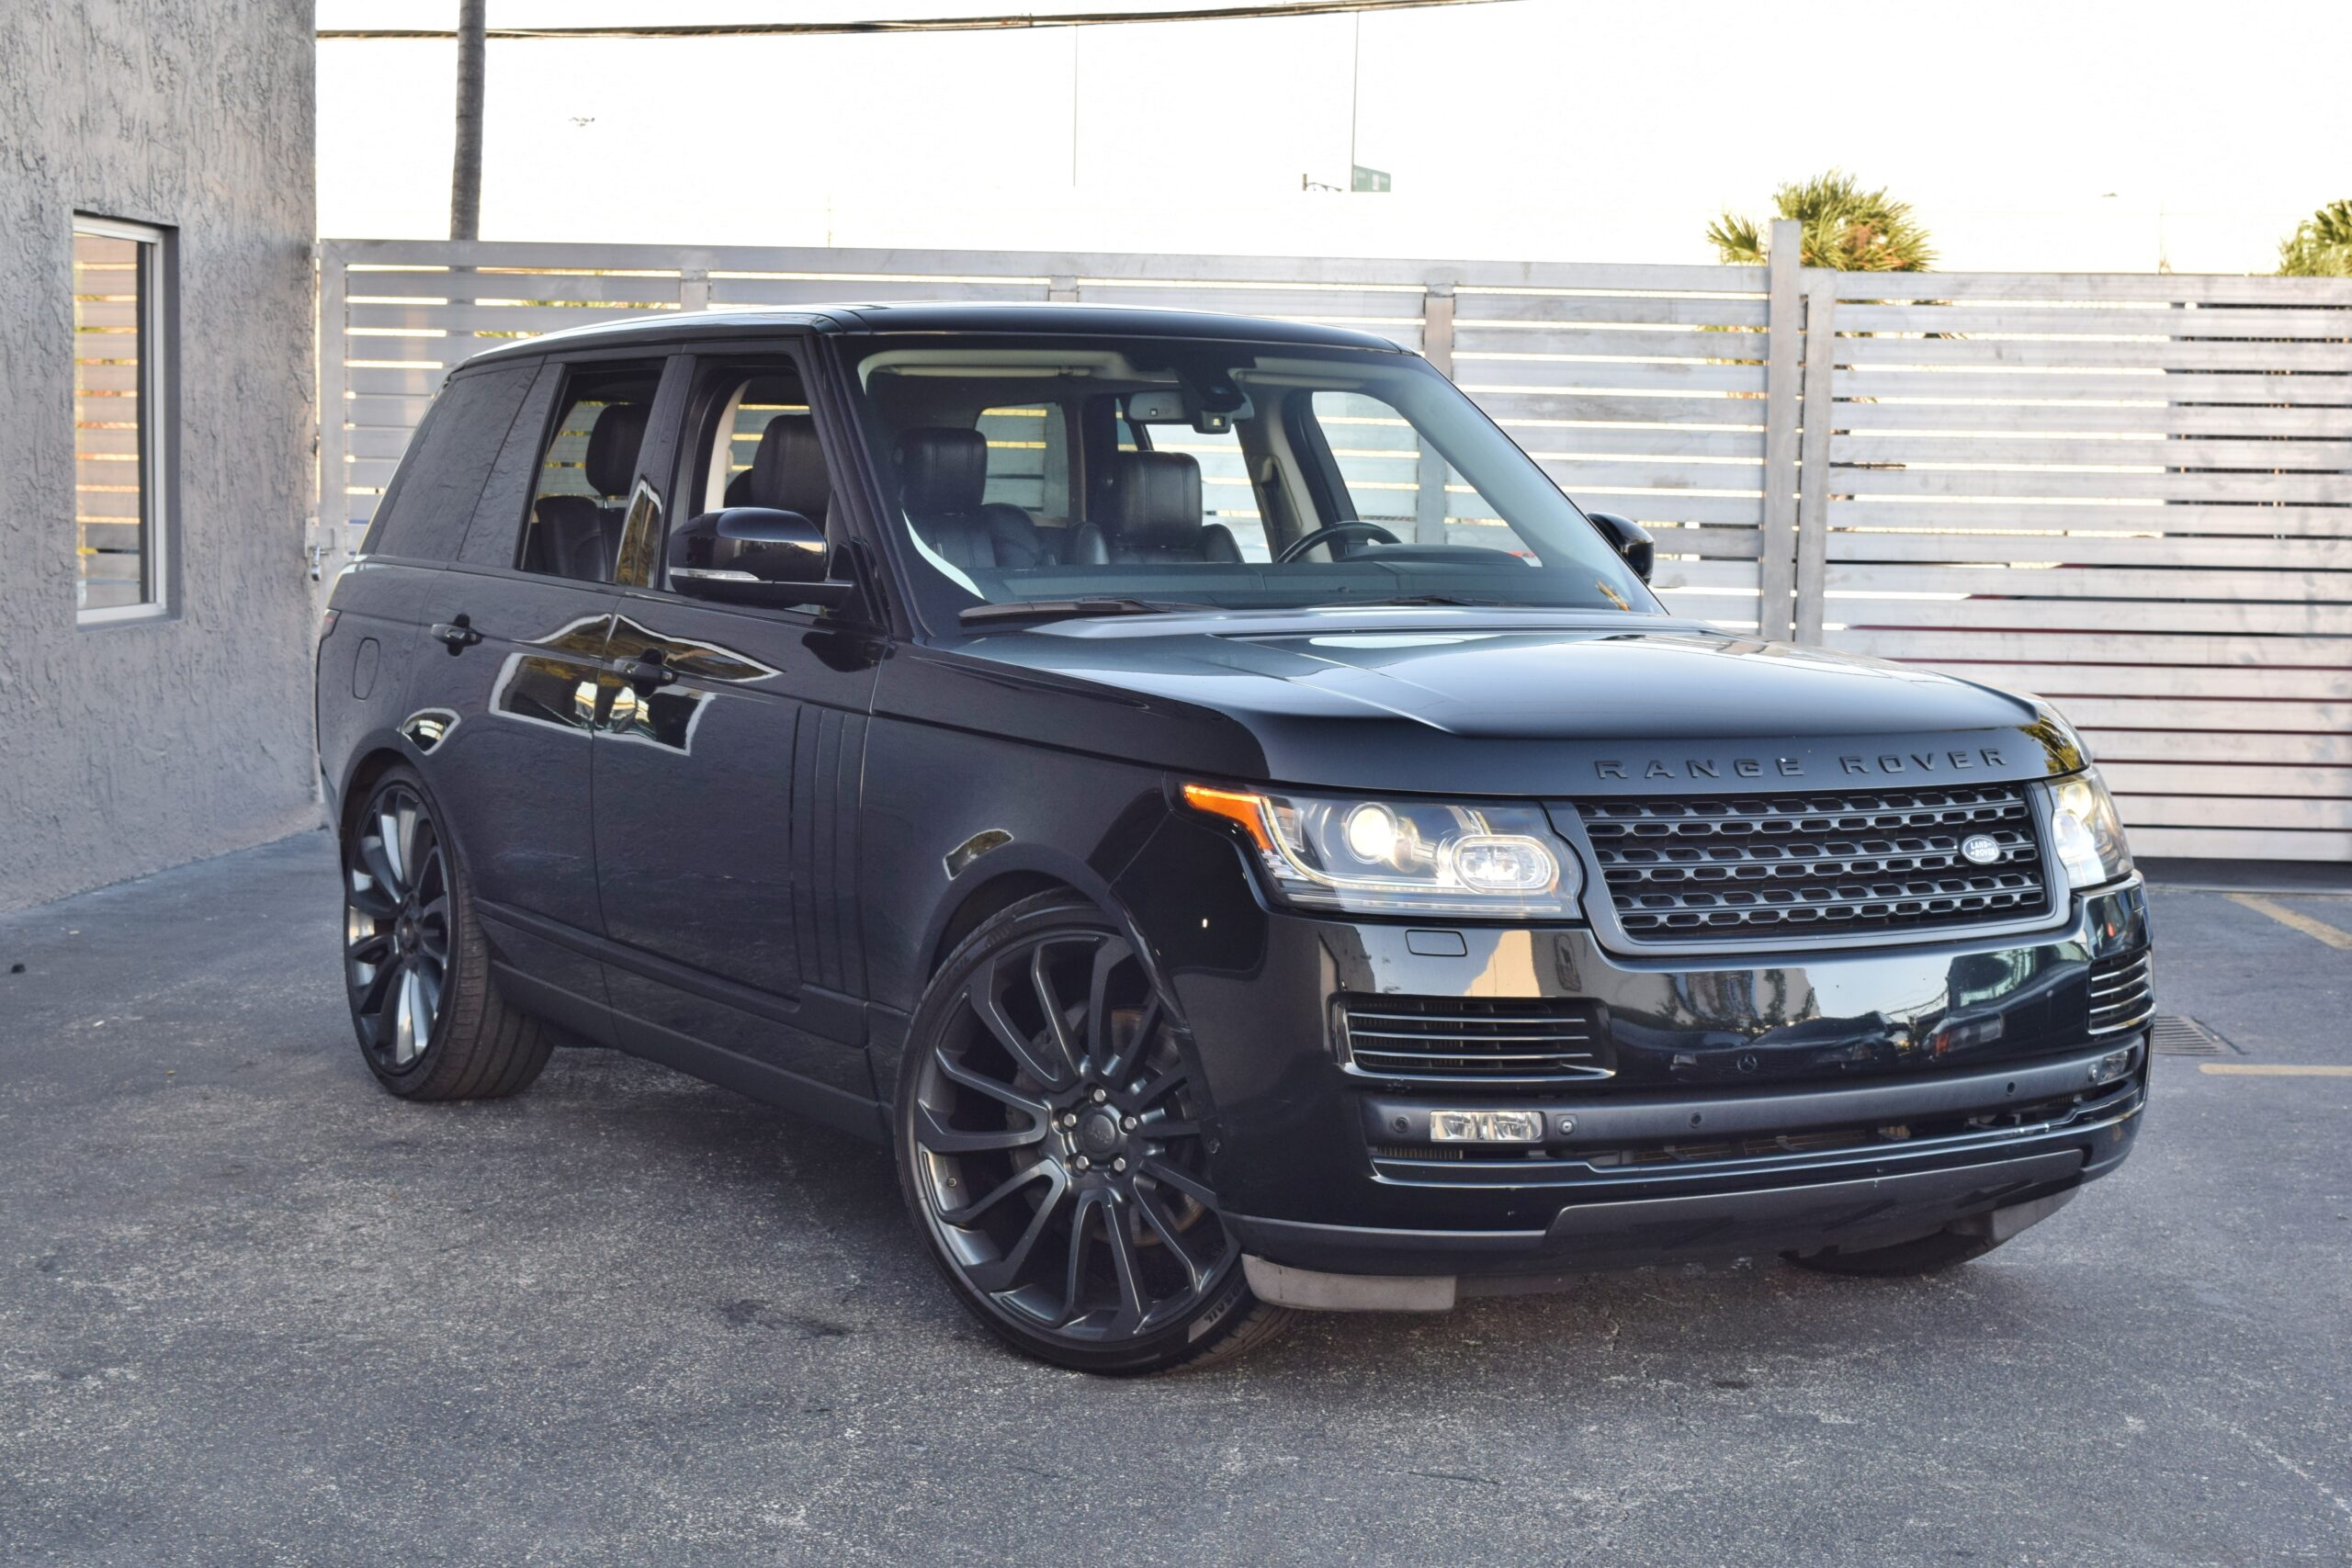 2013 Range Rover Supercharged